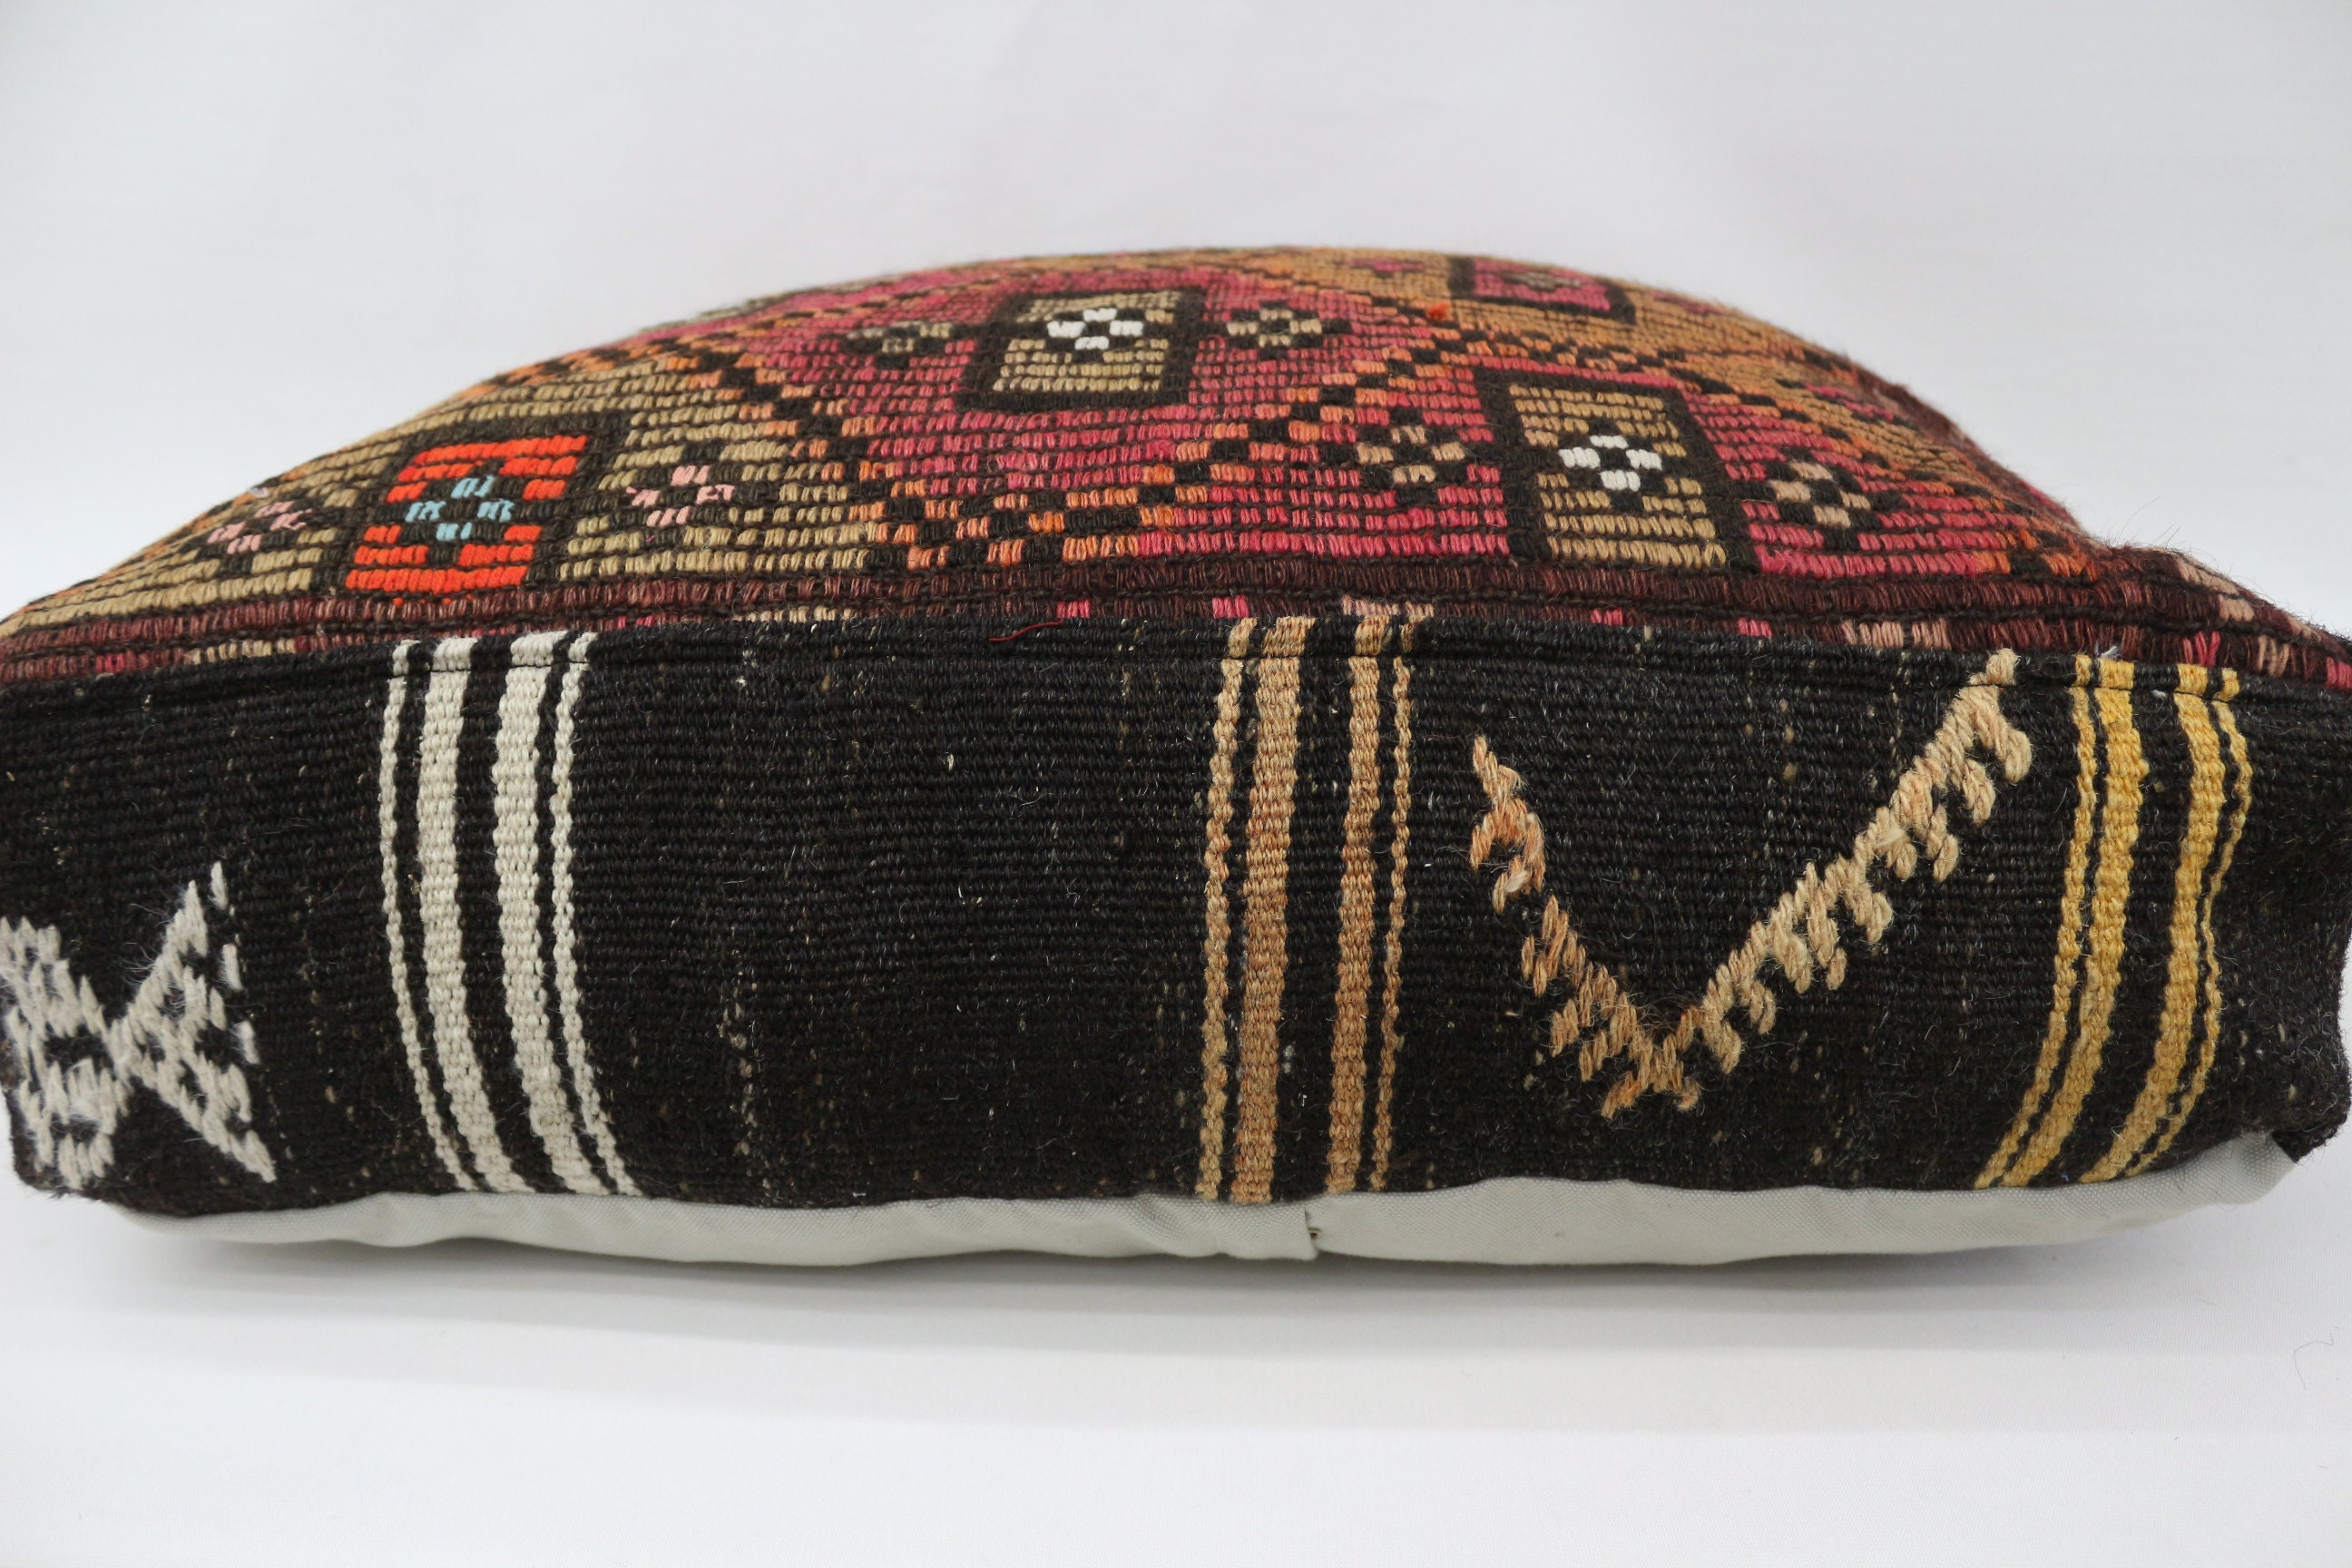 Embroidered Kilim Pouf,Floor Puff,24x24x6 Pear Seat,Pink Pouf,Pear Pouf,Floor Pillow Cover,Garden Pouf Pillow,Home Decor Puffs SP606015 215